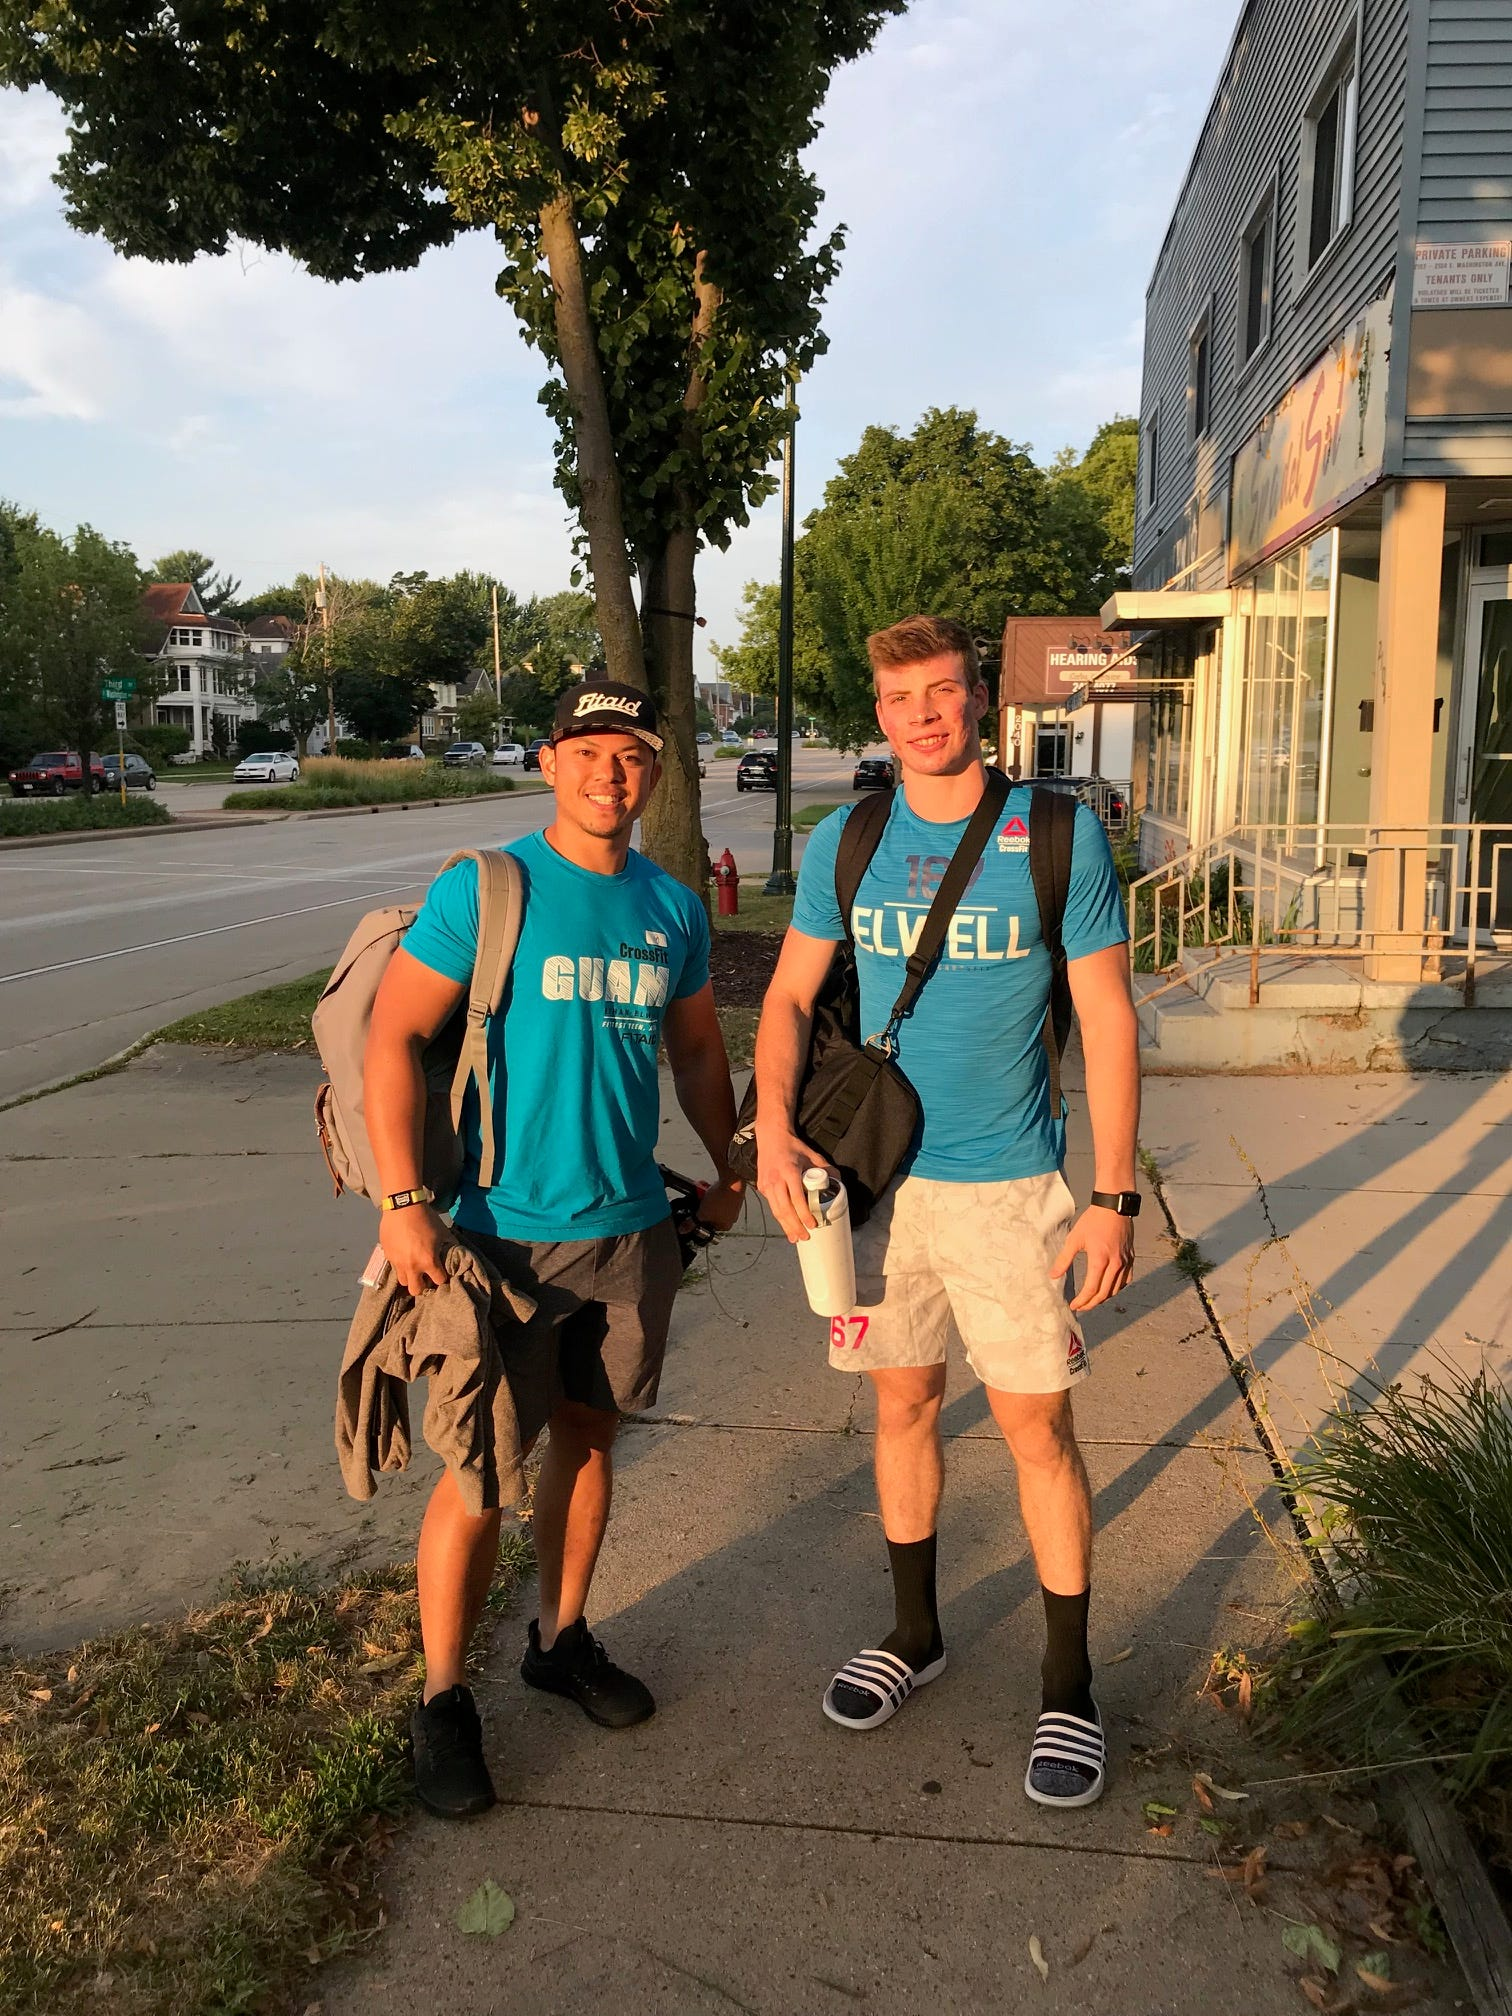 Coach Caleb Barretto, left, and athlete Ethan Elwell are in Madison, Wisconsin for the Reebok CrossFit Games 2018, where Elwell is one of the top 20 in the world in the 16-17 age group. Ranked No. 7 going into the contest, Elwell stands at No. 2 after finishing three of five fitness tests.